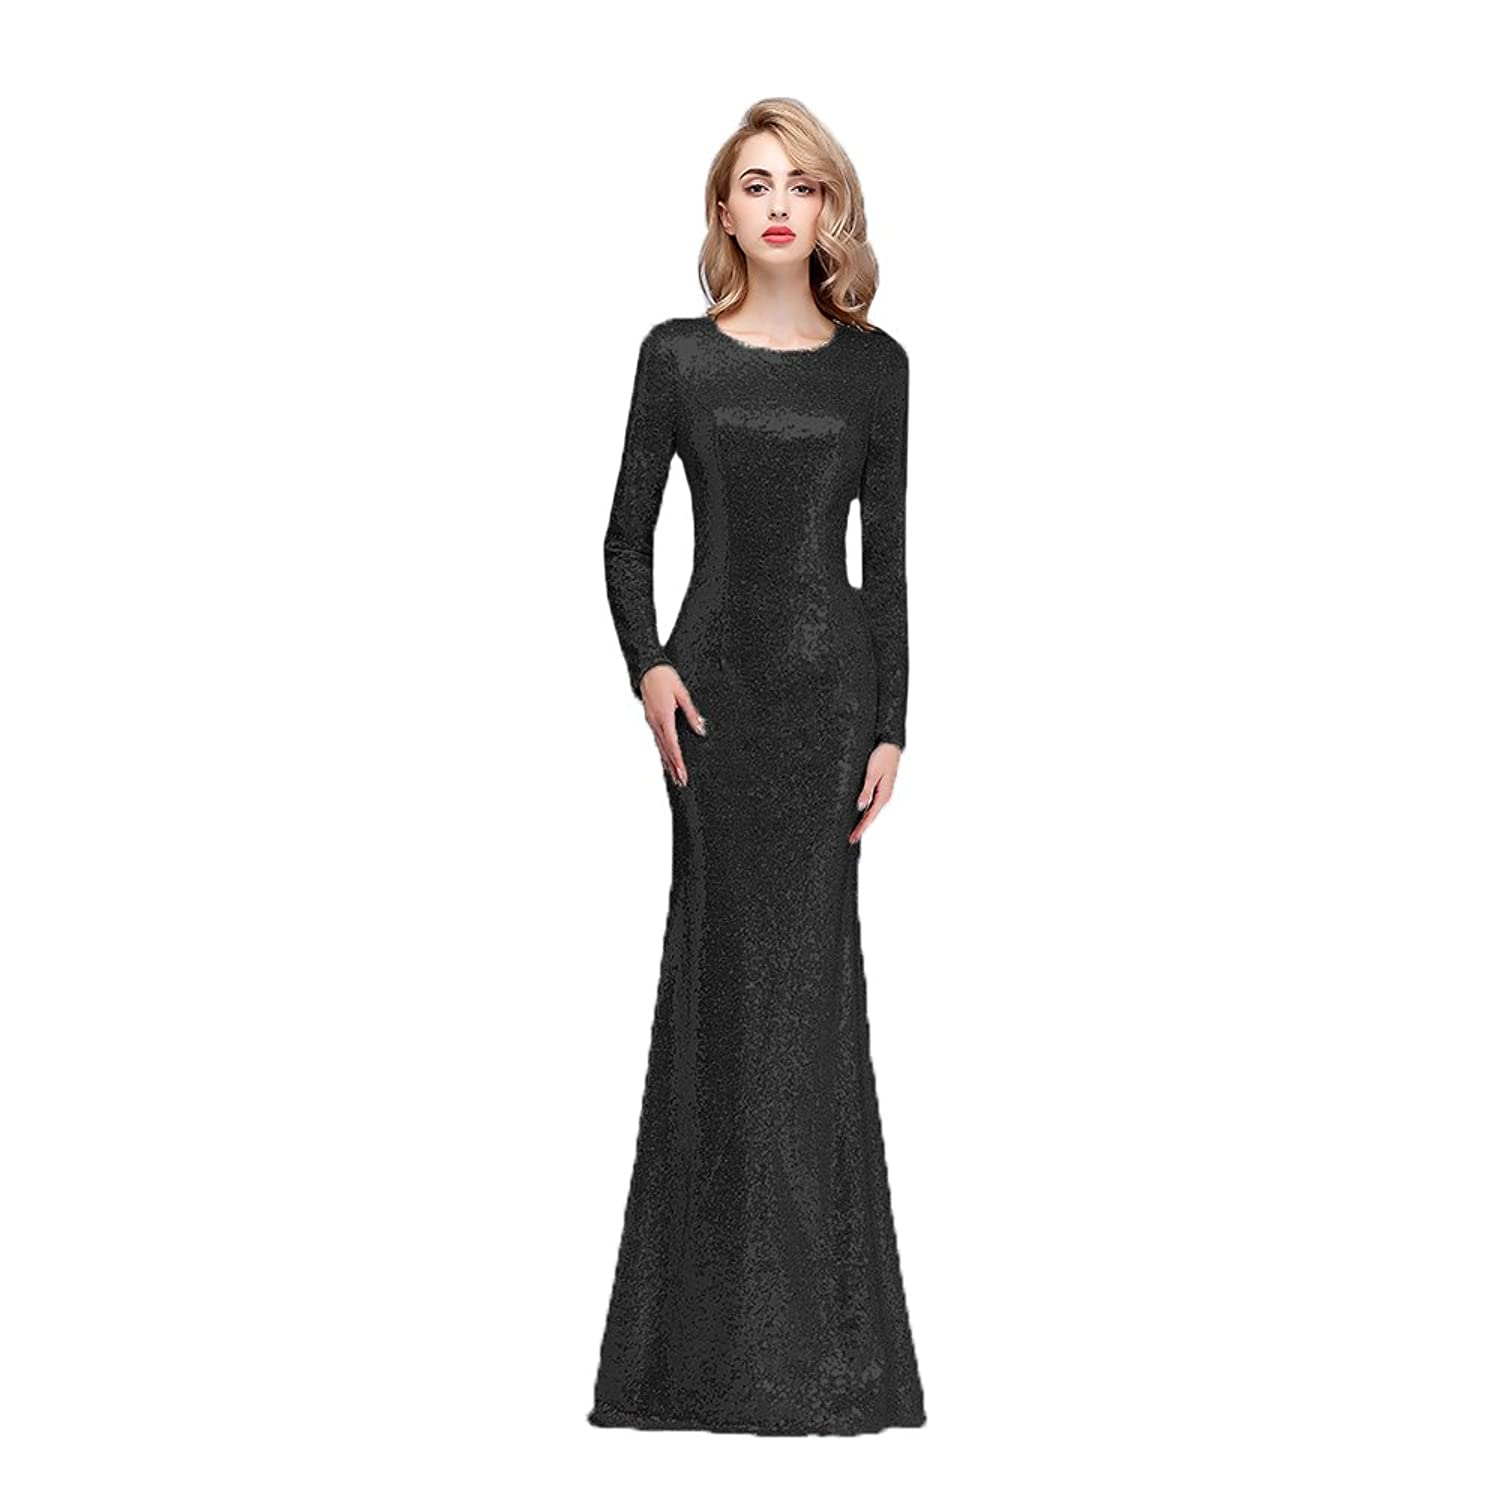 fabd71734c0 Top 10 wholesale Black Lace Bridesmaid Dresses With Sleeves ...